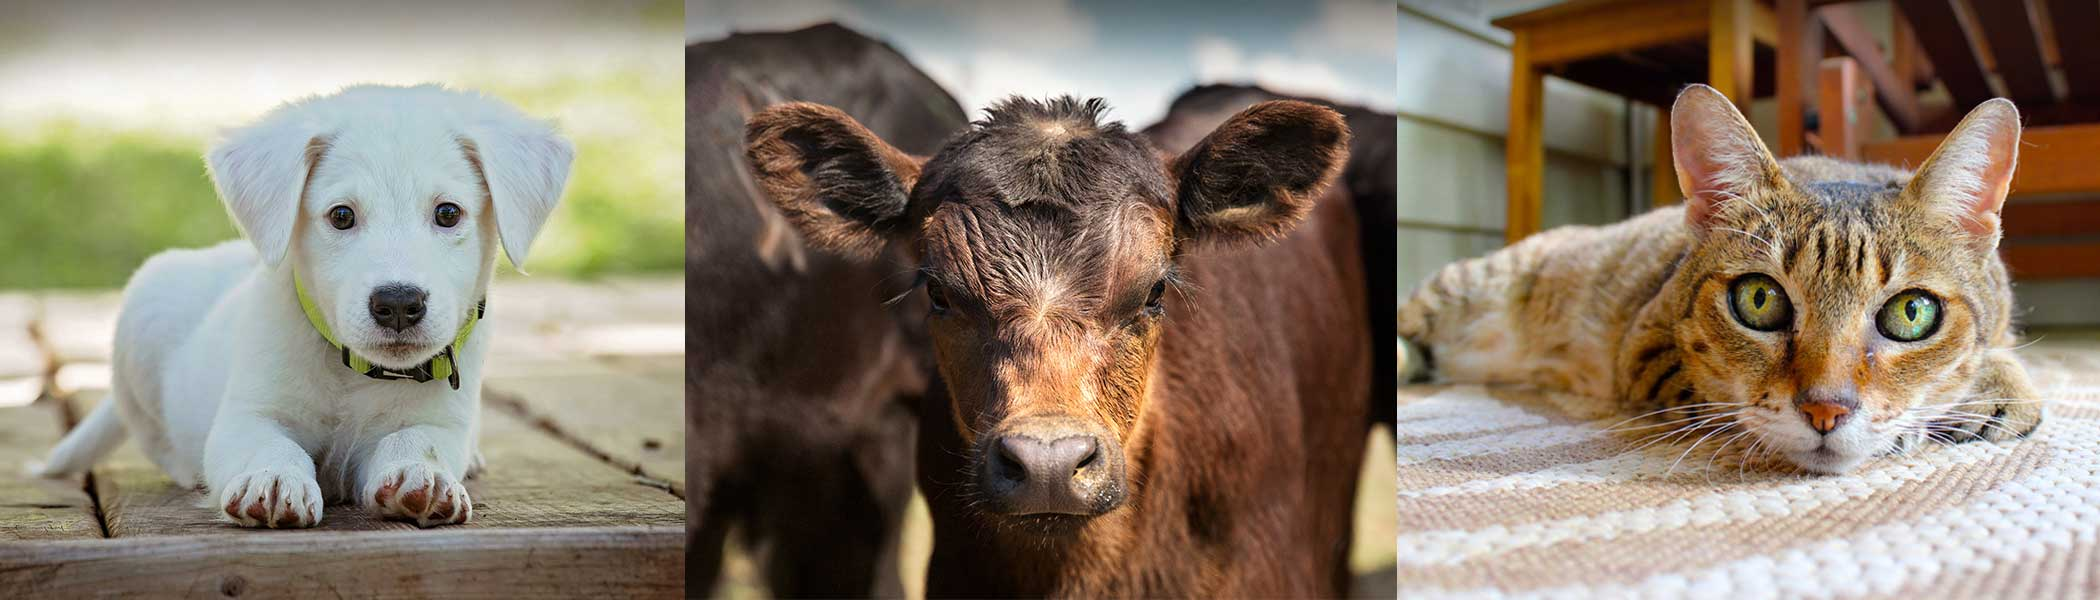 Animal Health Clinic Of Humboldt reviews | Veterinarians at 626 2 St - Humboldt SK